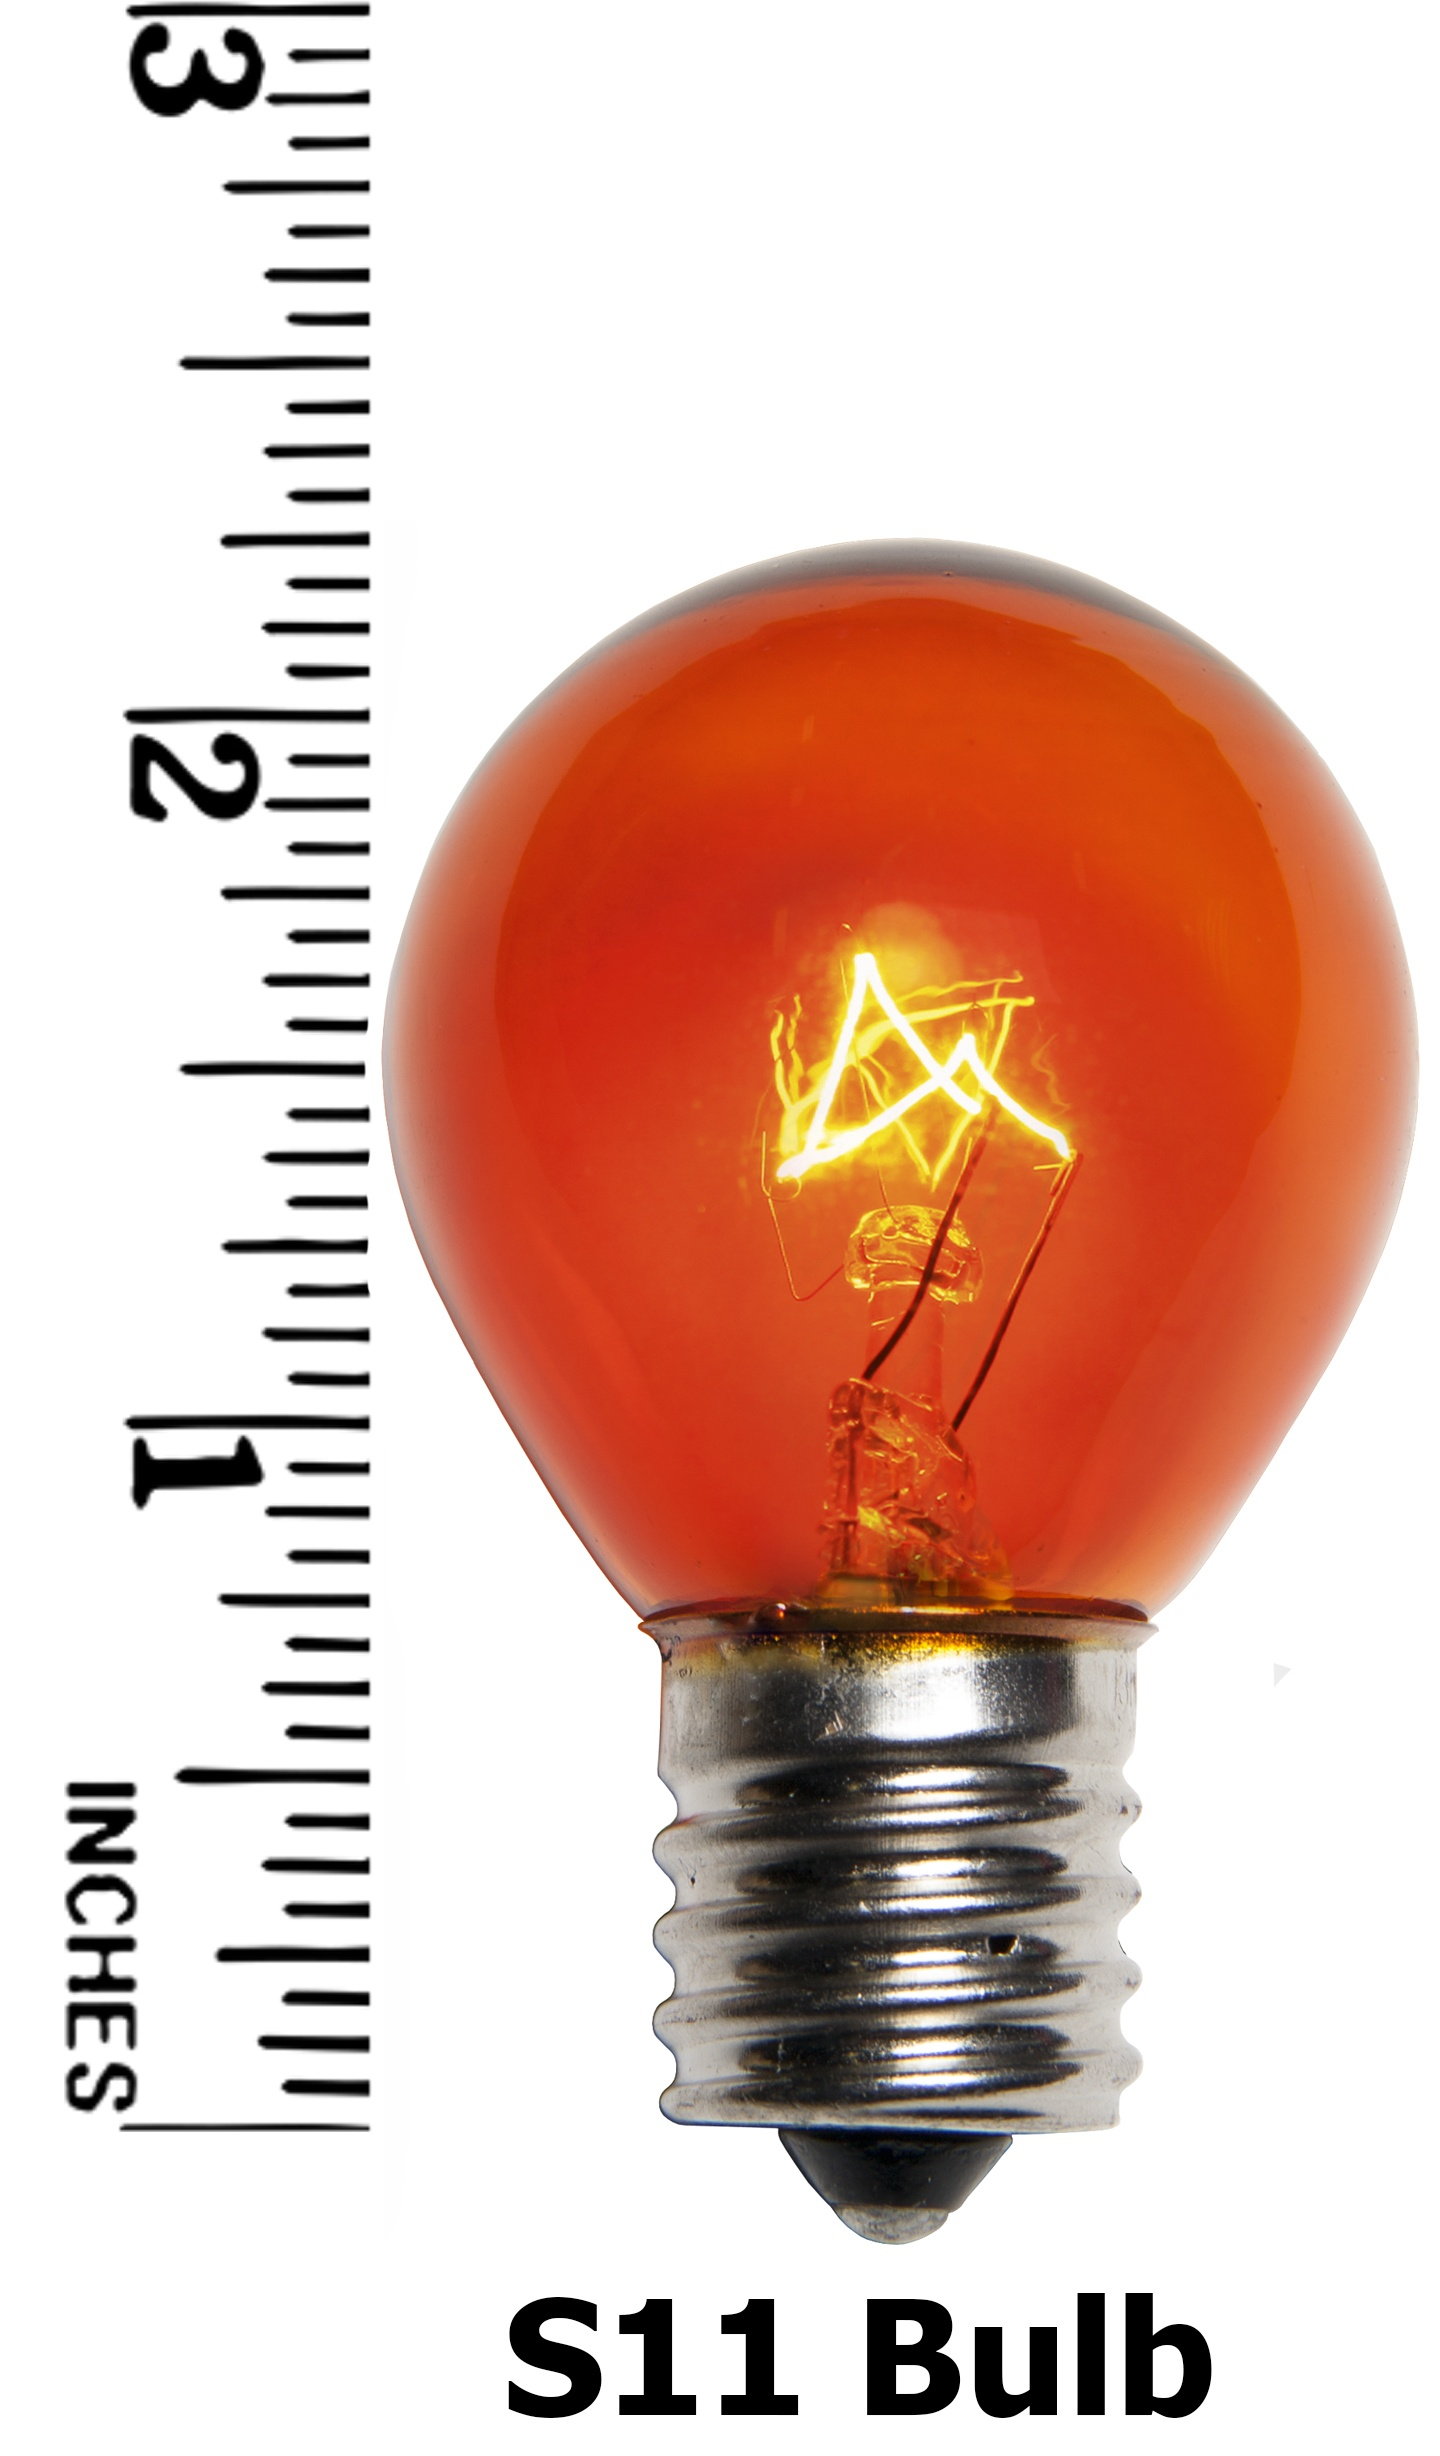 S11 Amber Bulb Measurement